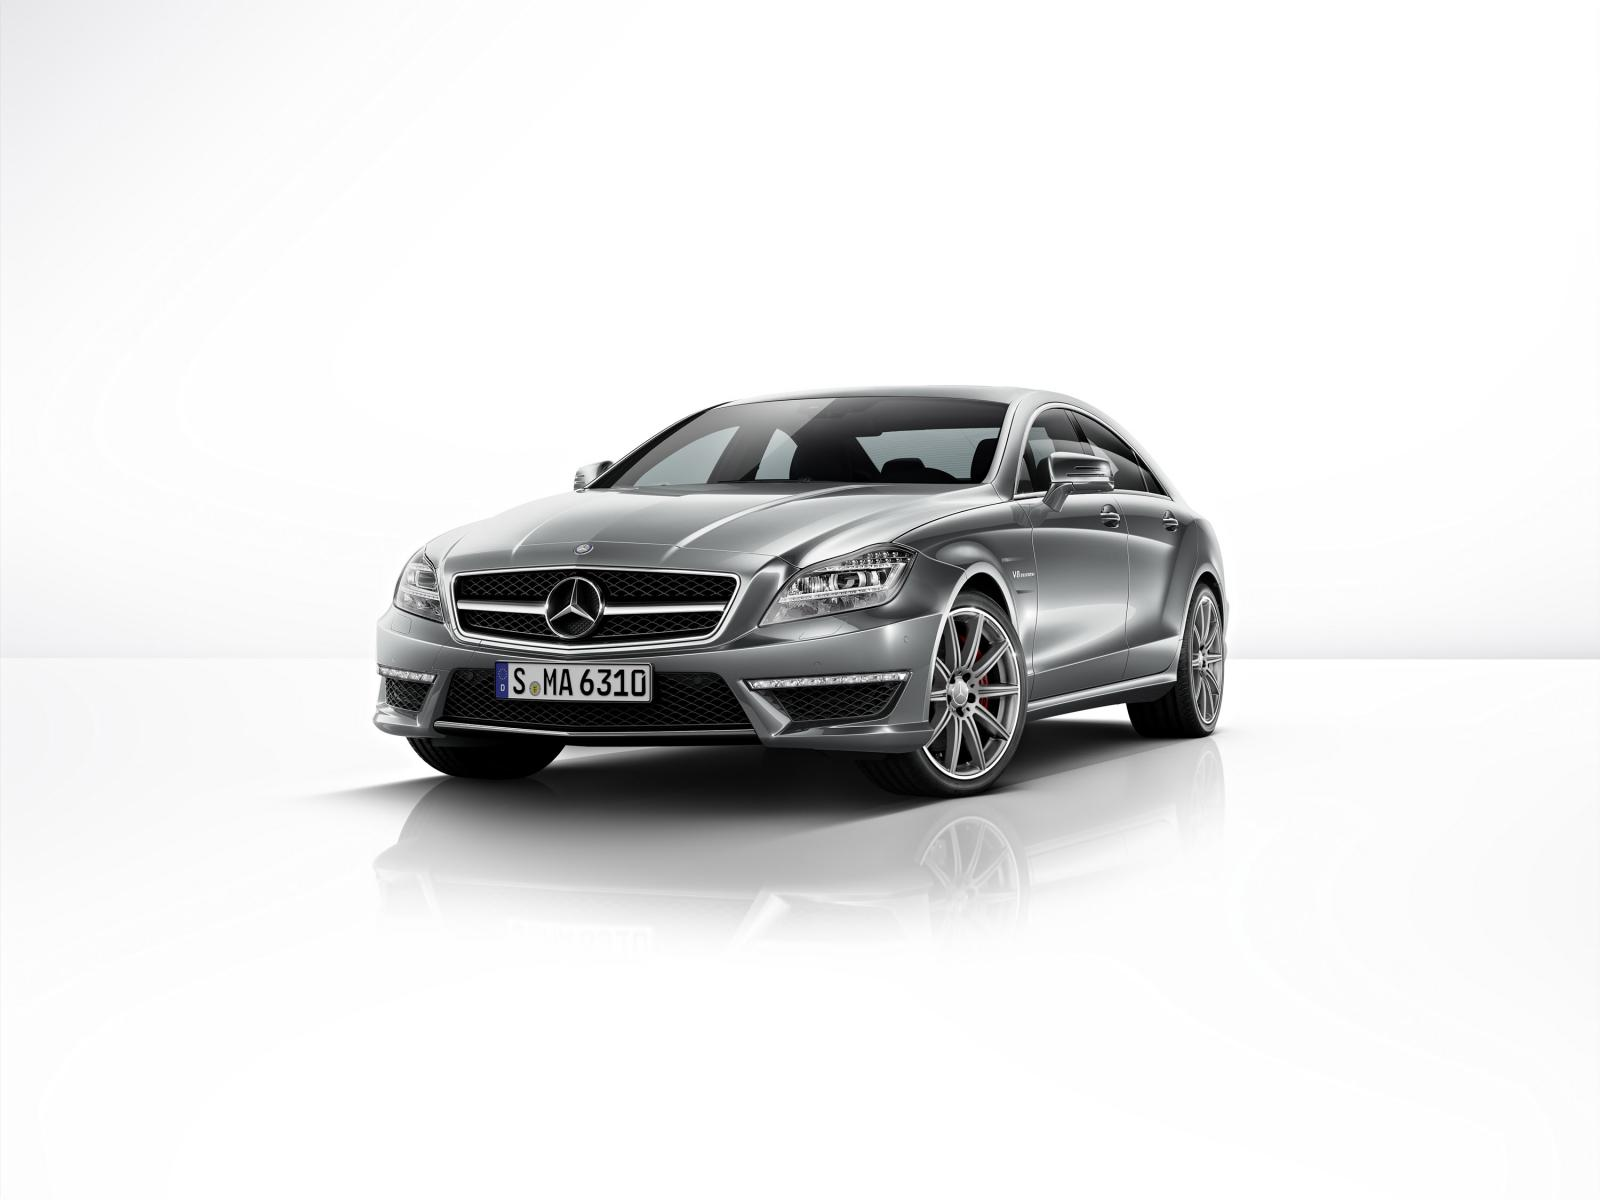 2014 Mercedes CLS 63 AMG